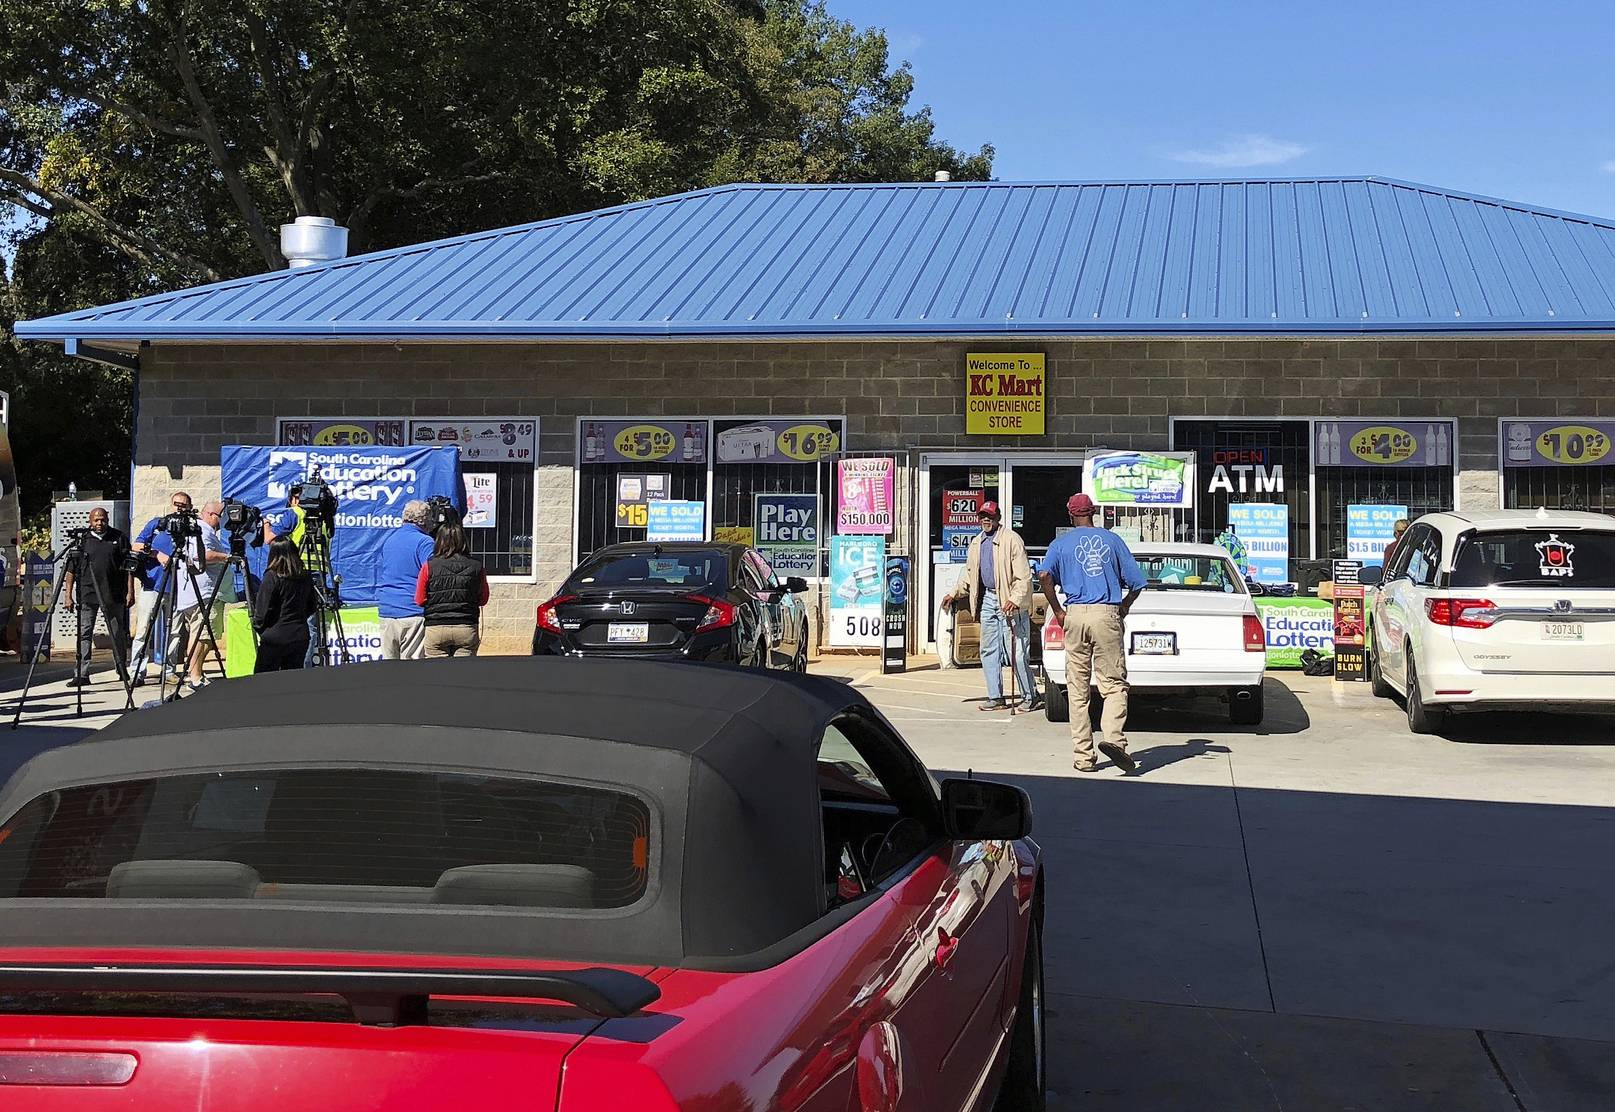 The KC Mart in Simpsonville, S.C., where the winning $1.537 billion Mega Millions lottery ticket was purchased.